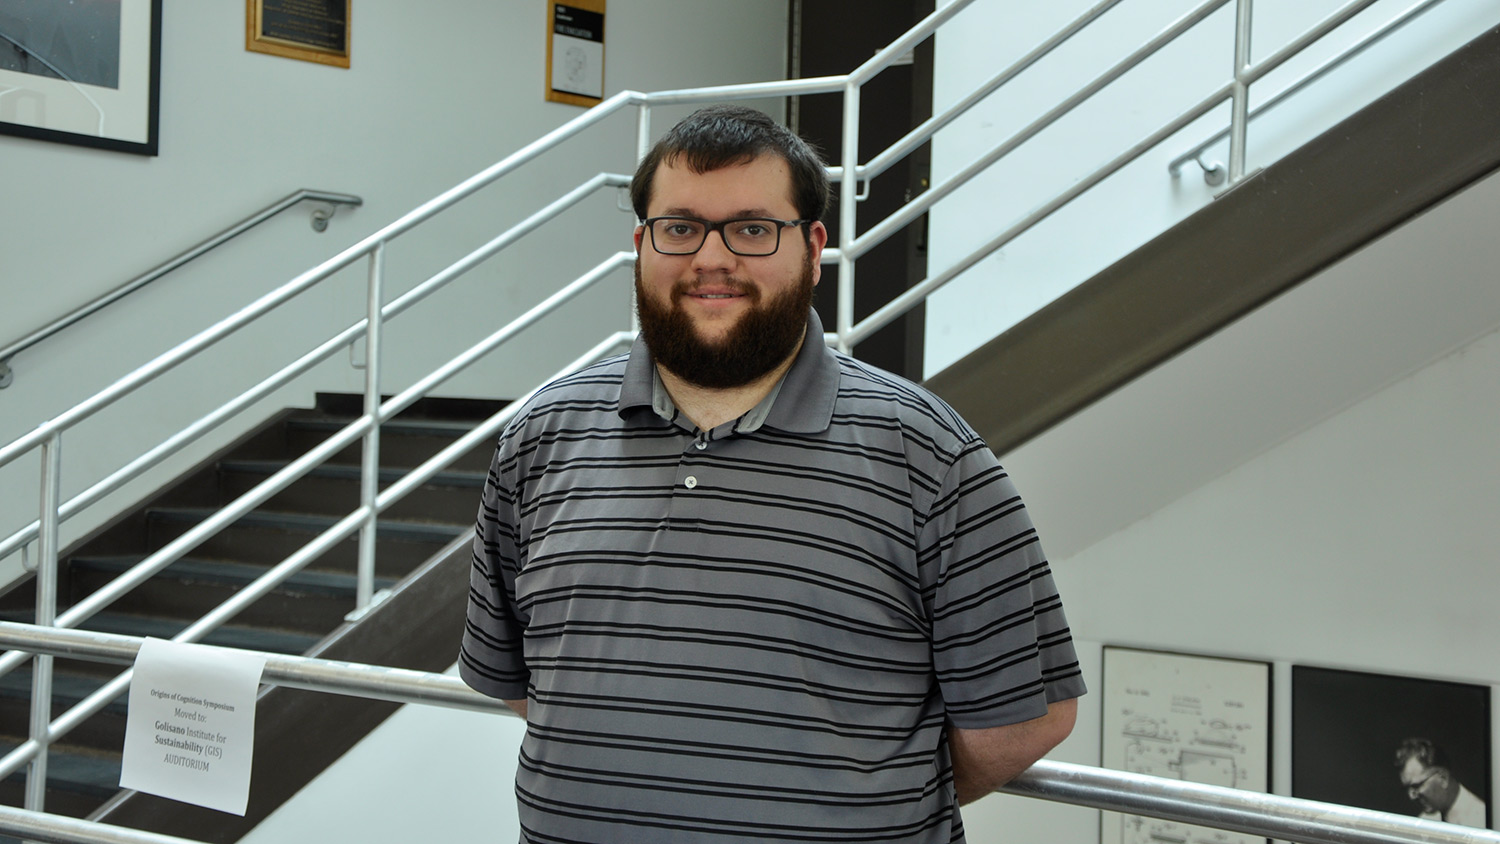 Student with beard and glasses wearing striped polo shirt stands near stairwell